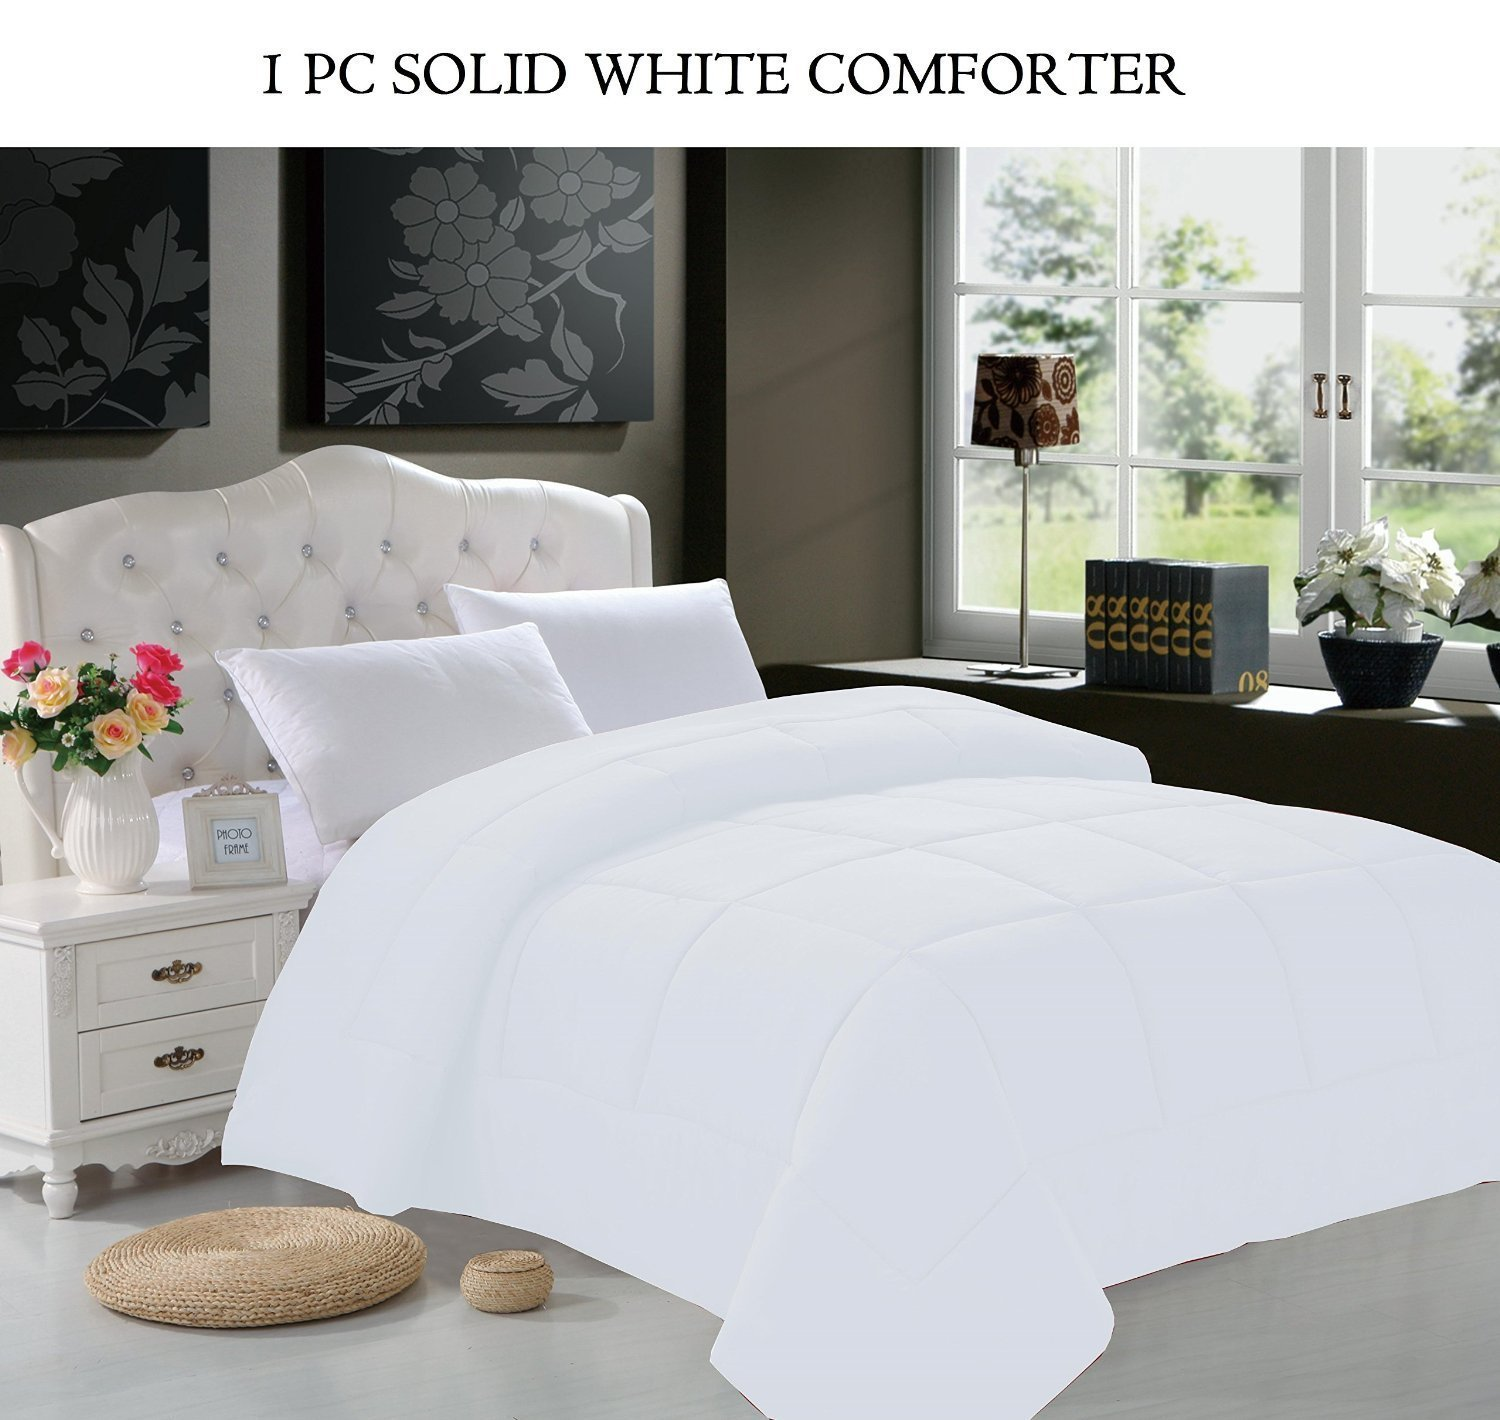 applied is a insert define for what intended to set comfy bedroom cover duvet comforter house your inspiration